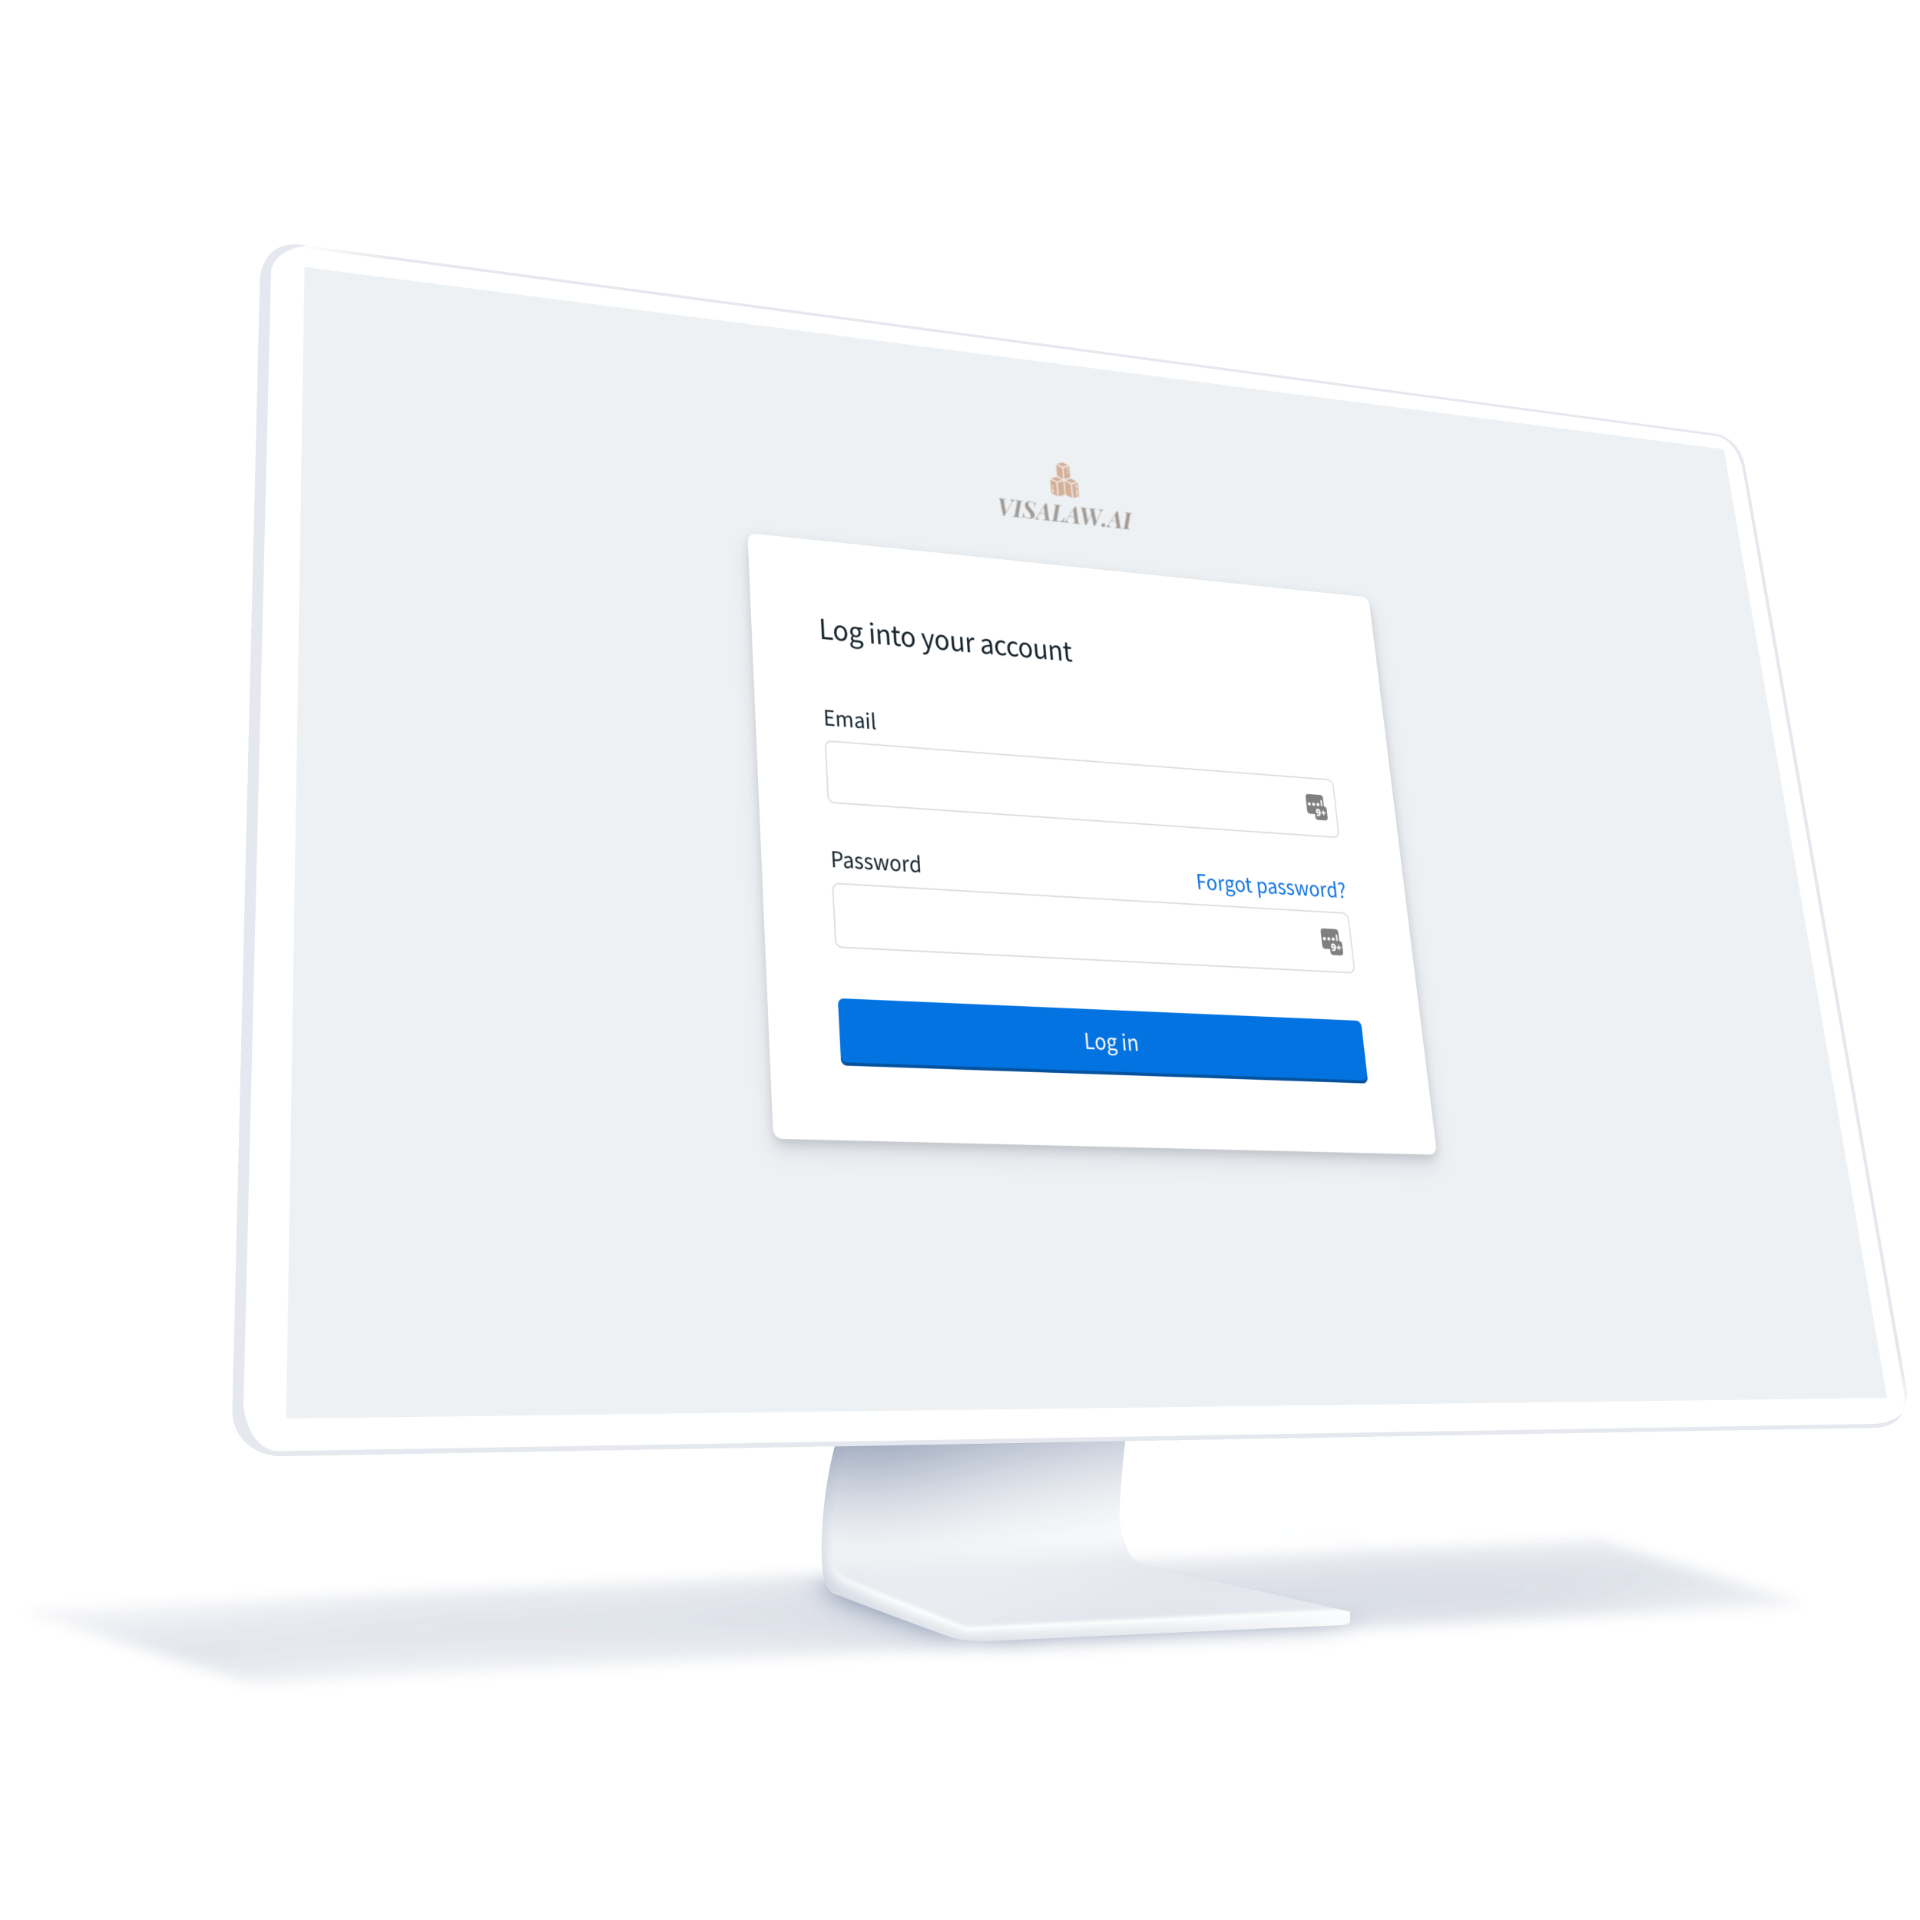 A computer screen with the Visalaw.AI login page opened.